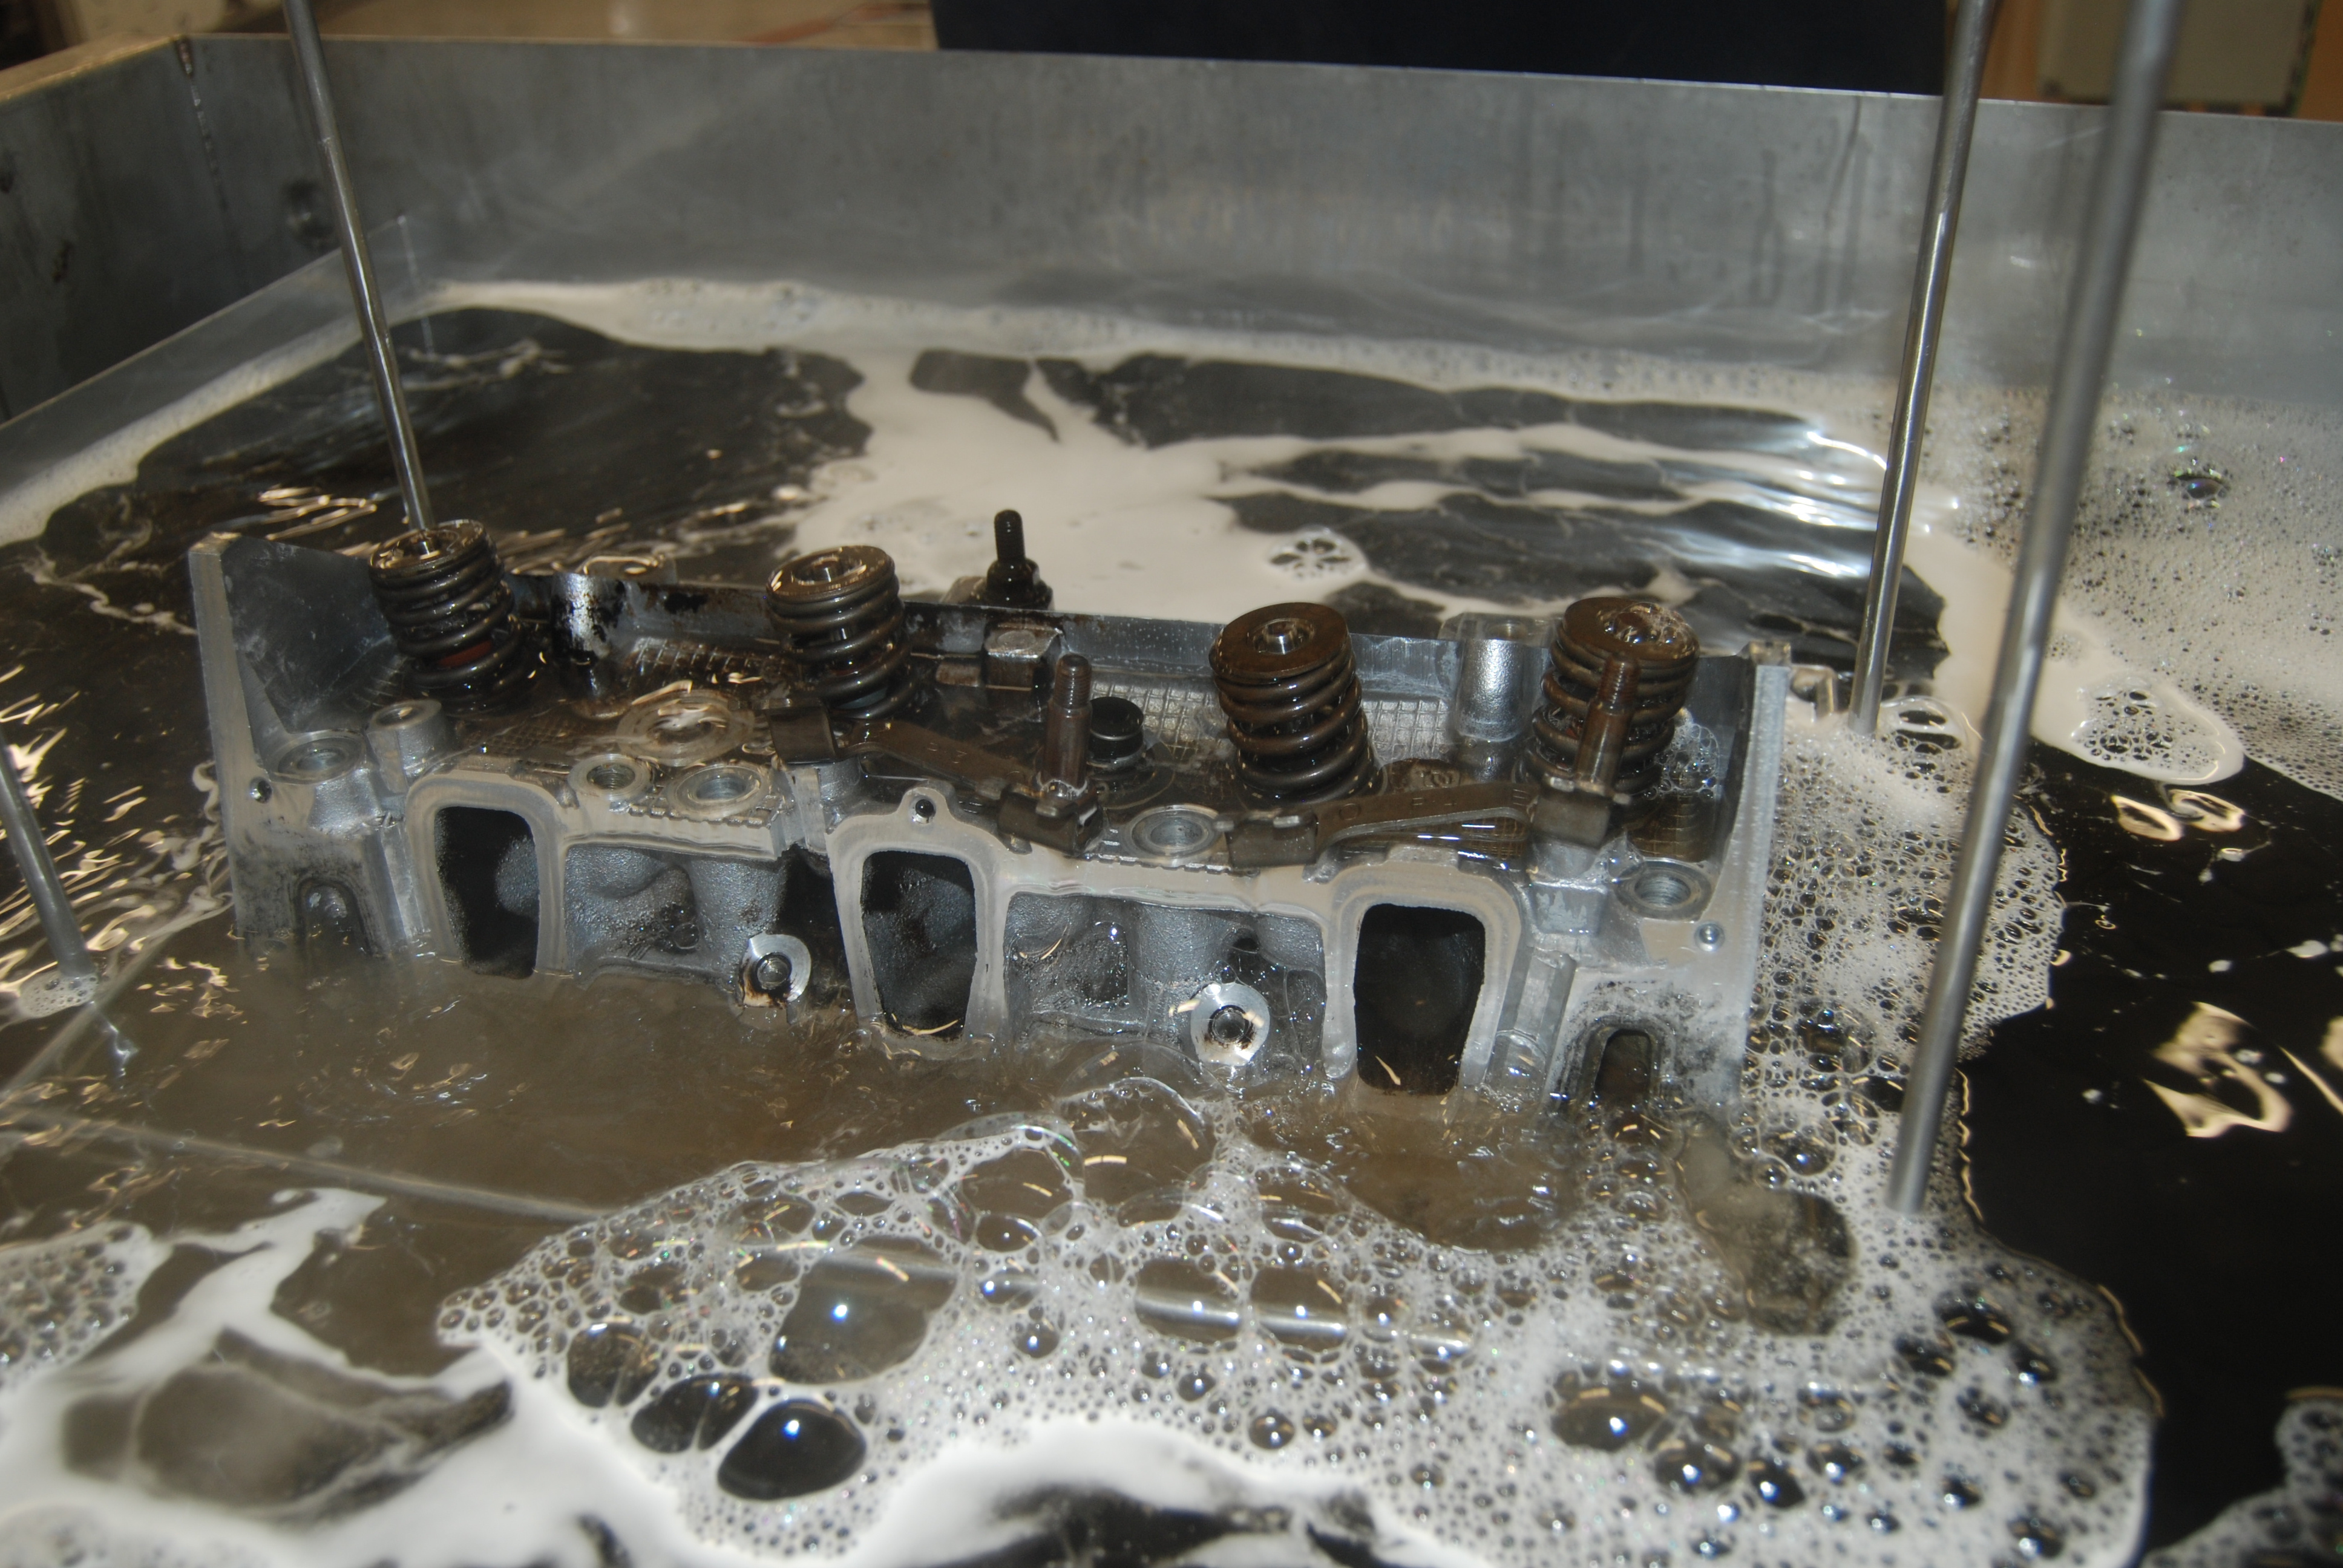 During ultrasonic cleaning